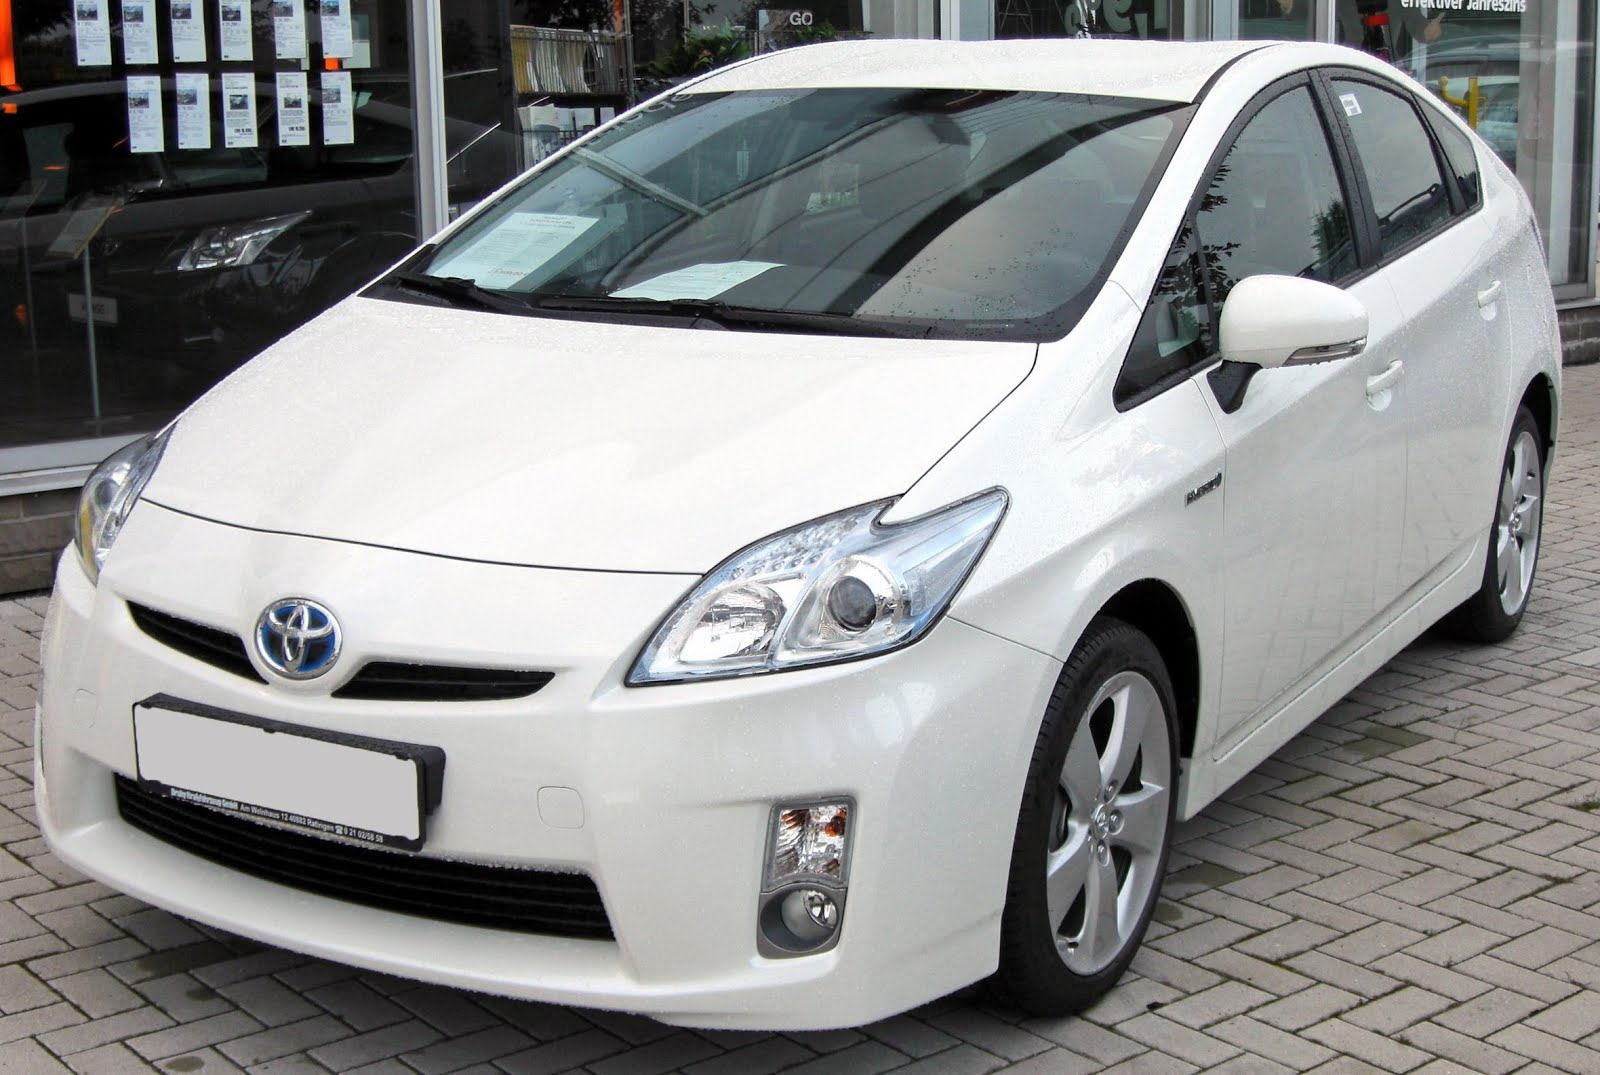 Toyota Prius best-sold vehicle this year in California | Electric